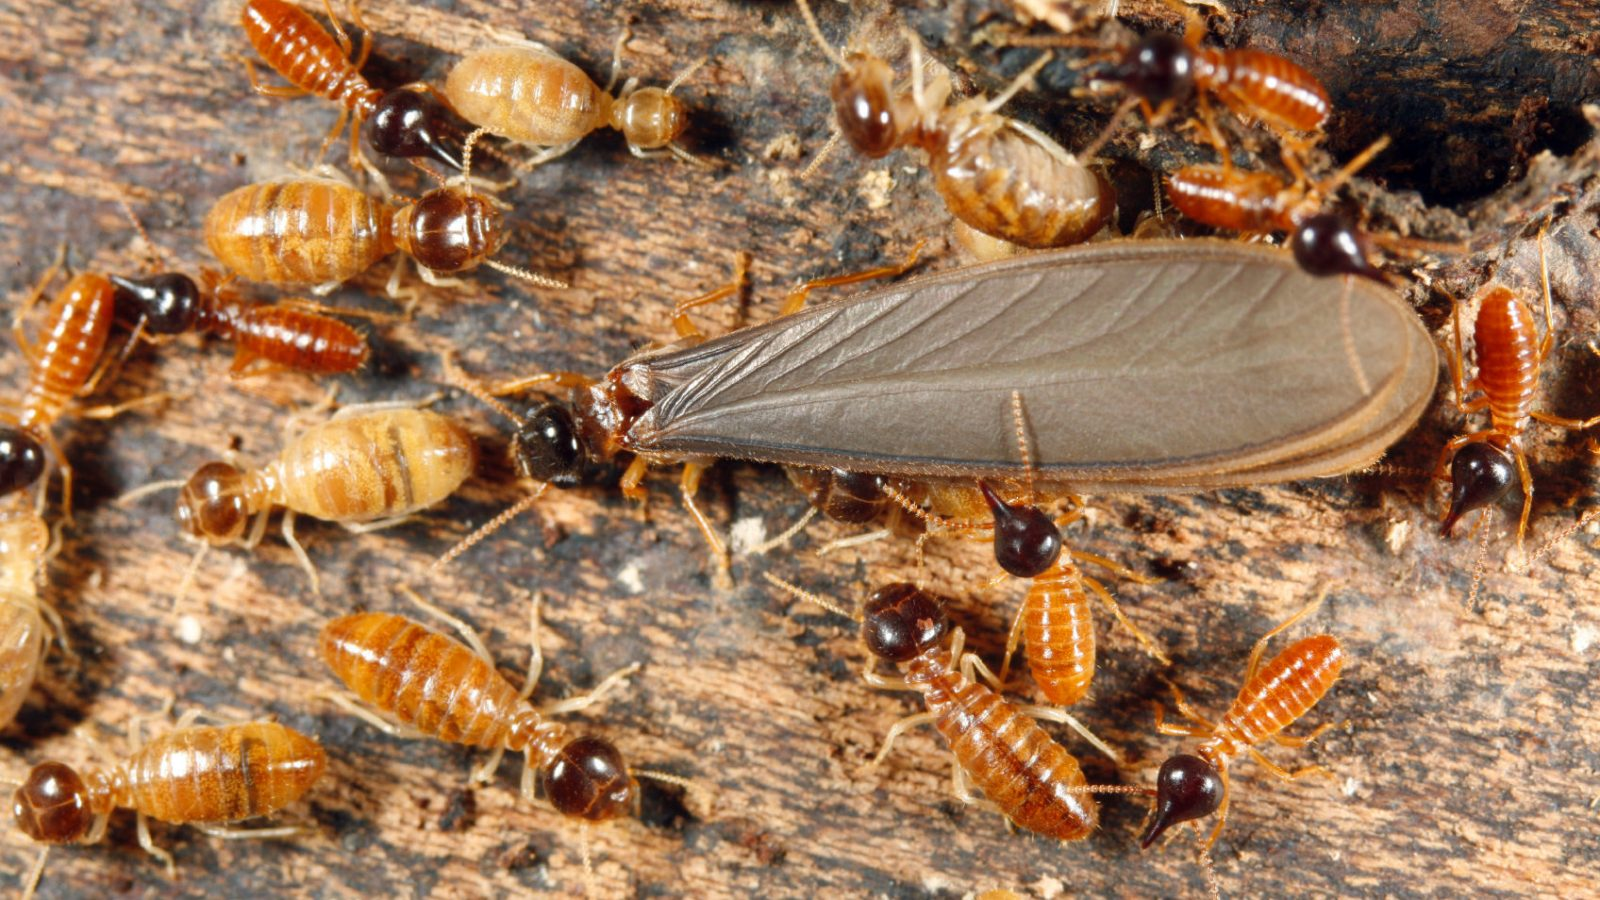 Termites and an Alate